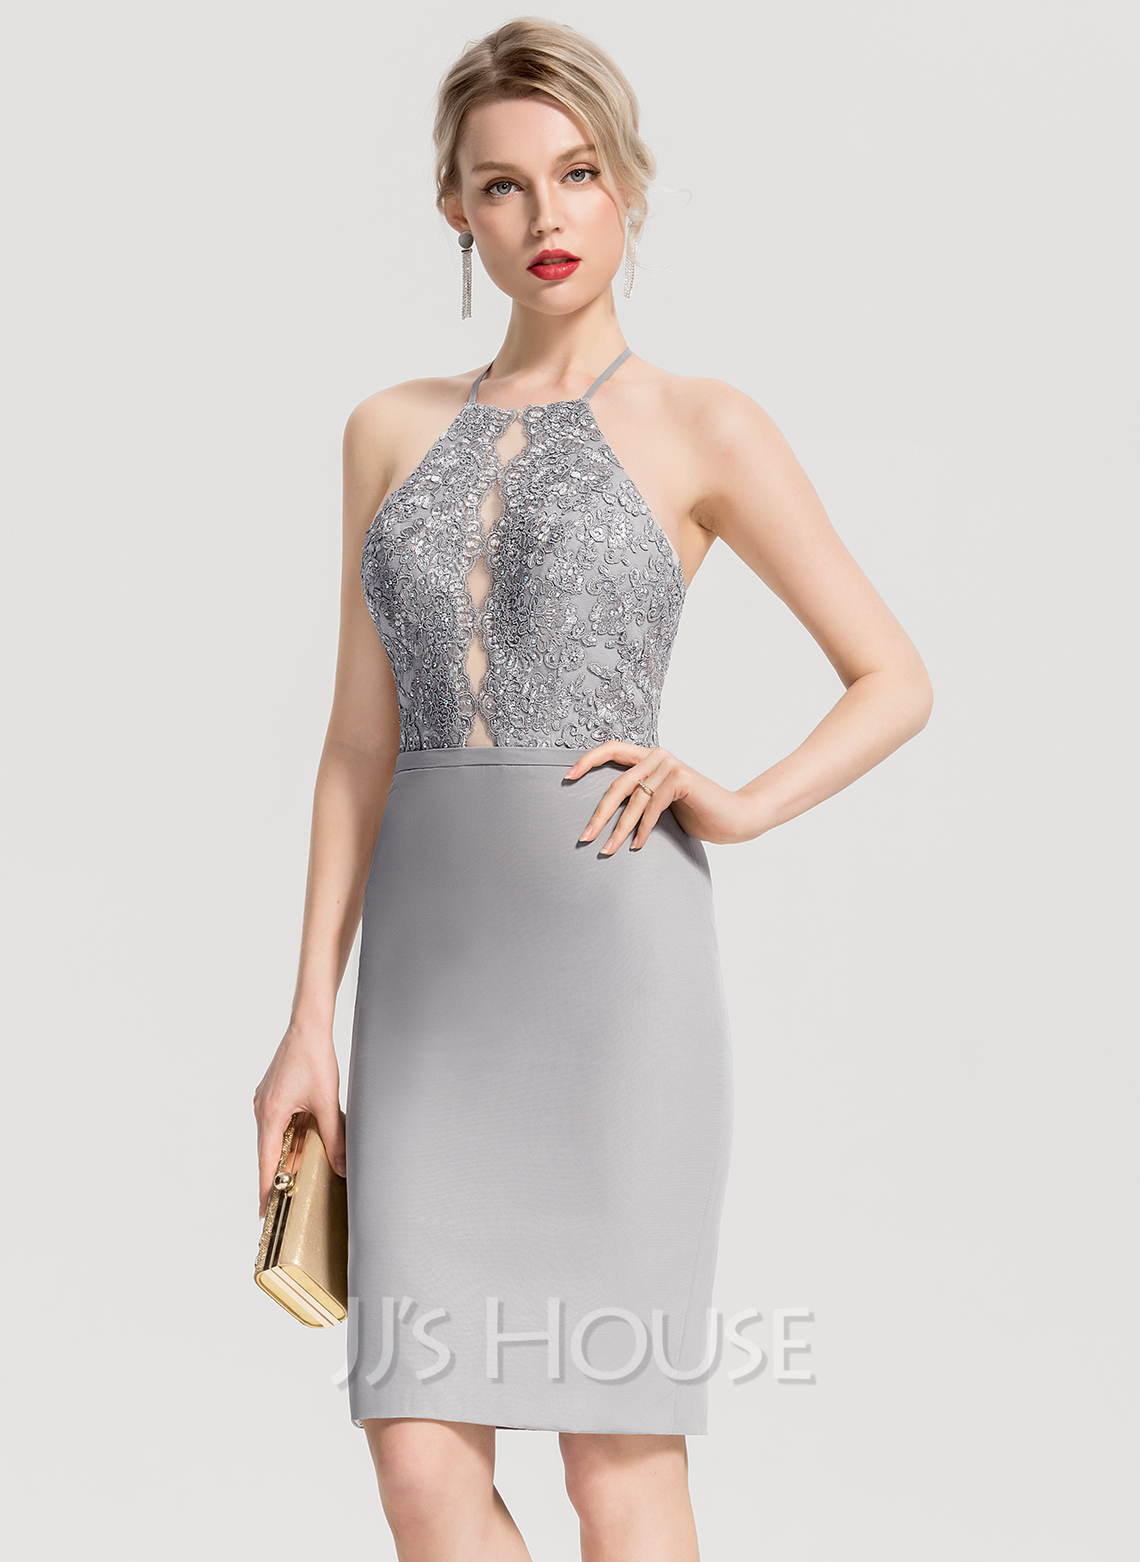 Sheath/Column Square Neckline Knee-Length Chiffon Cocktail Dress With Beading Appliques Lace